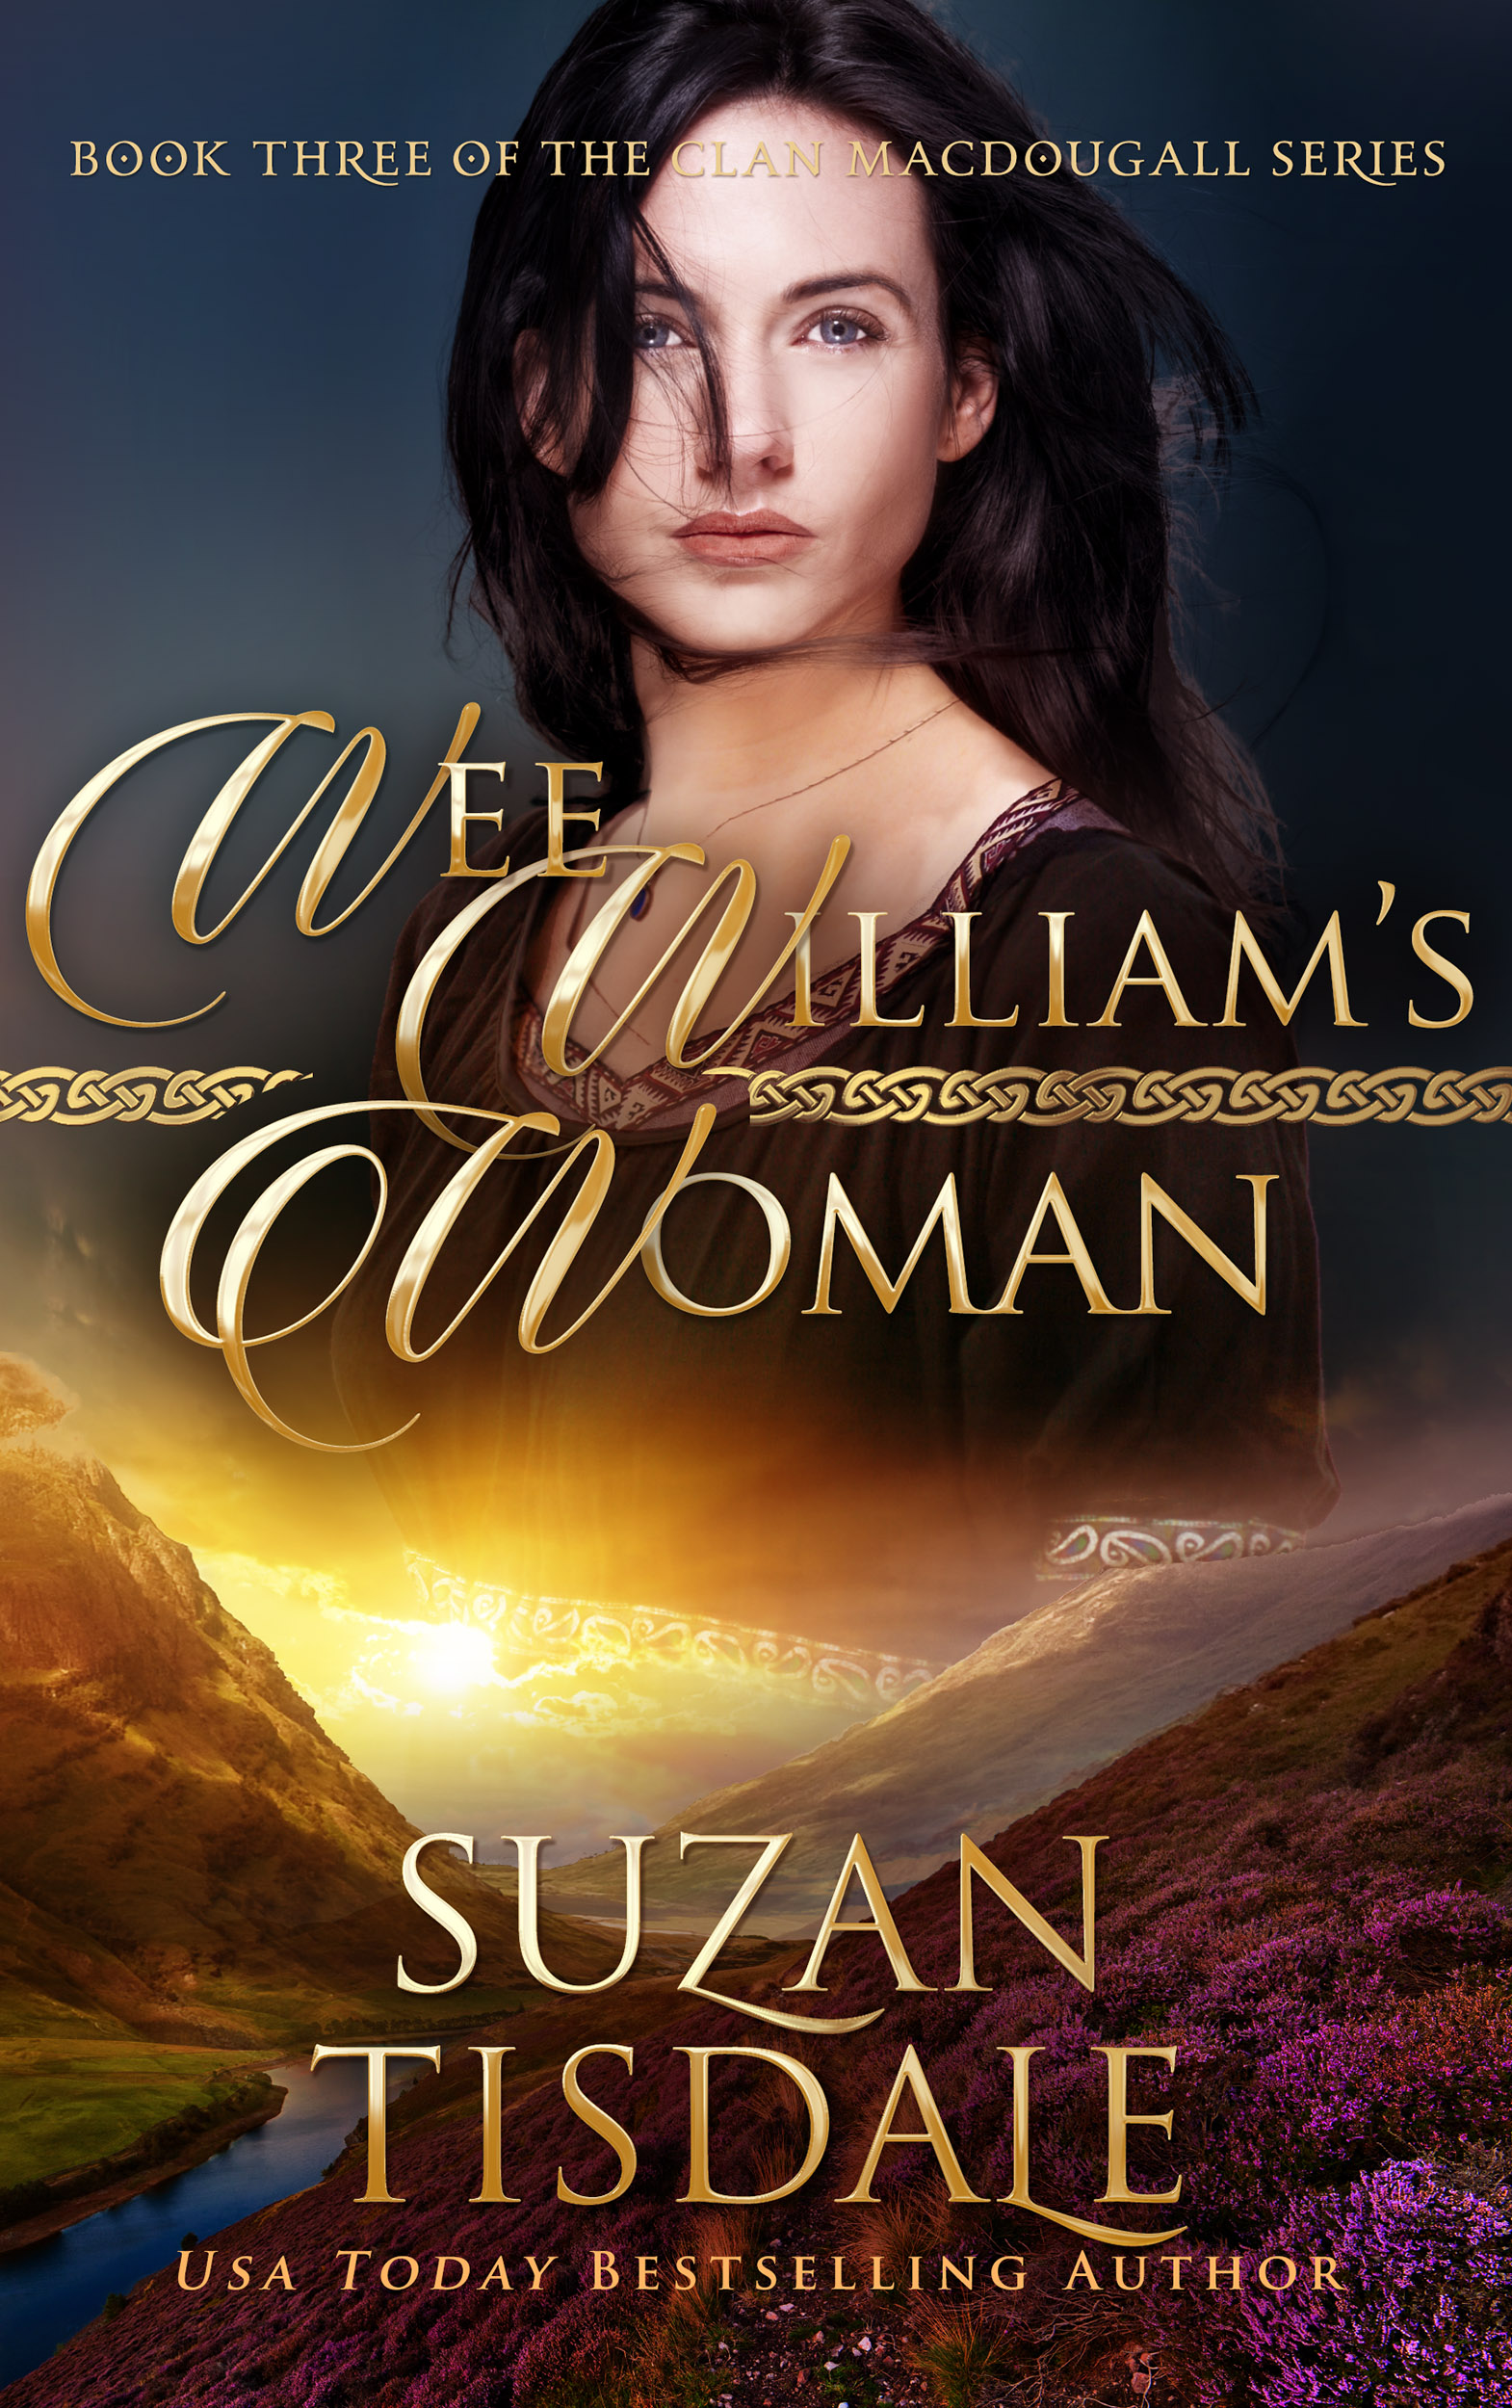 Wee William's Woman - Ebook Small